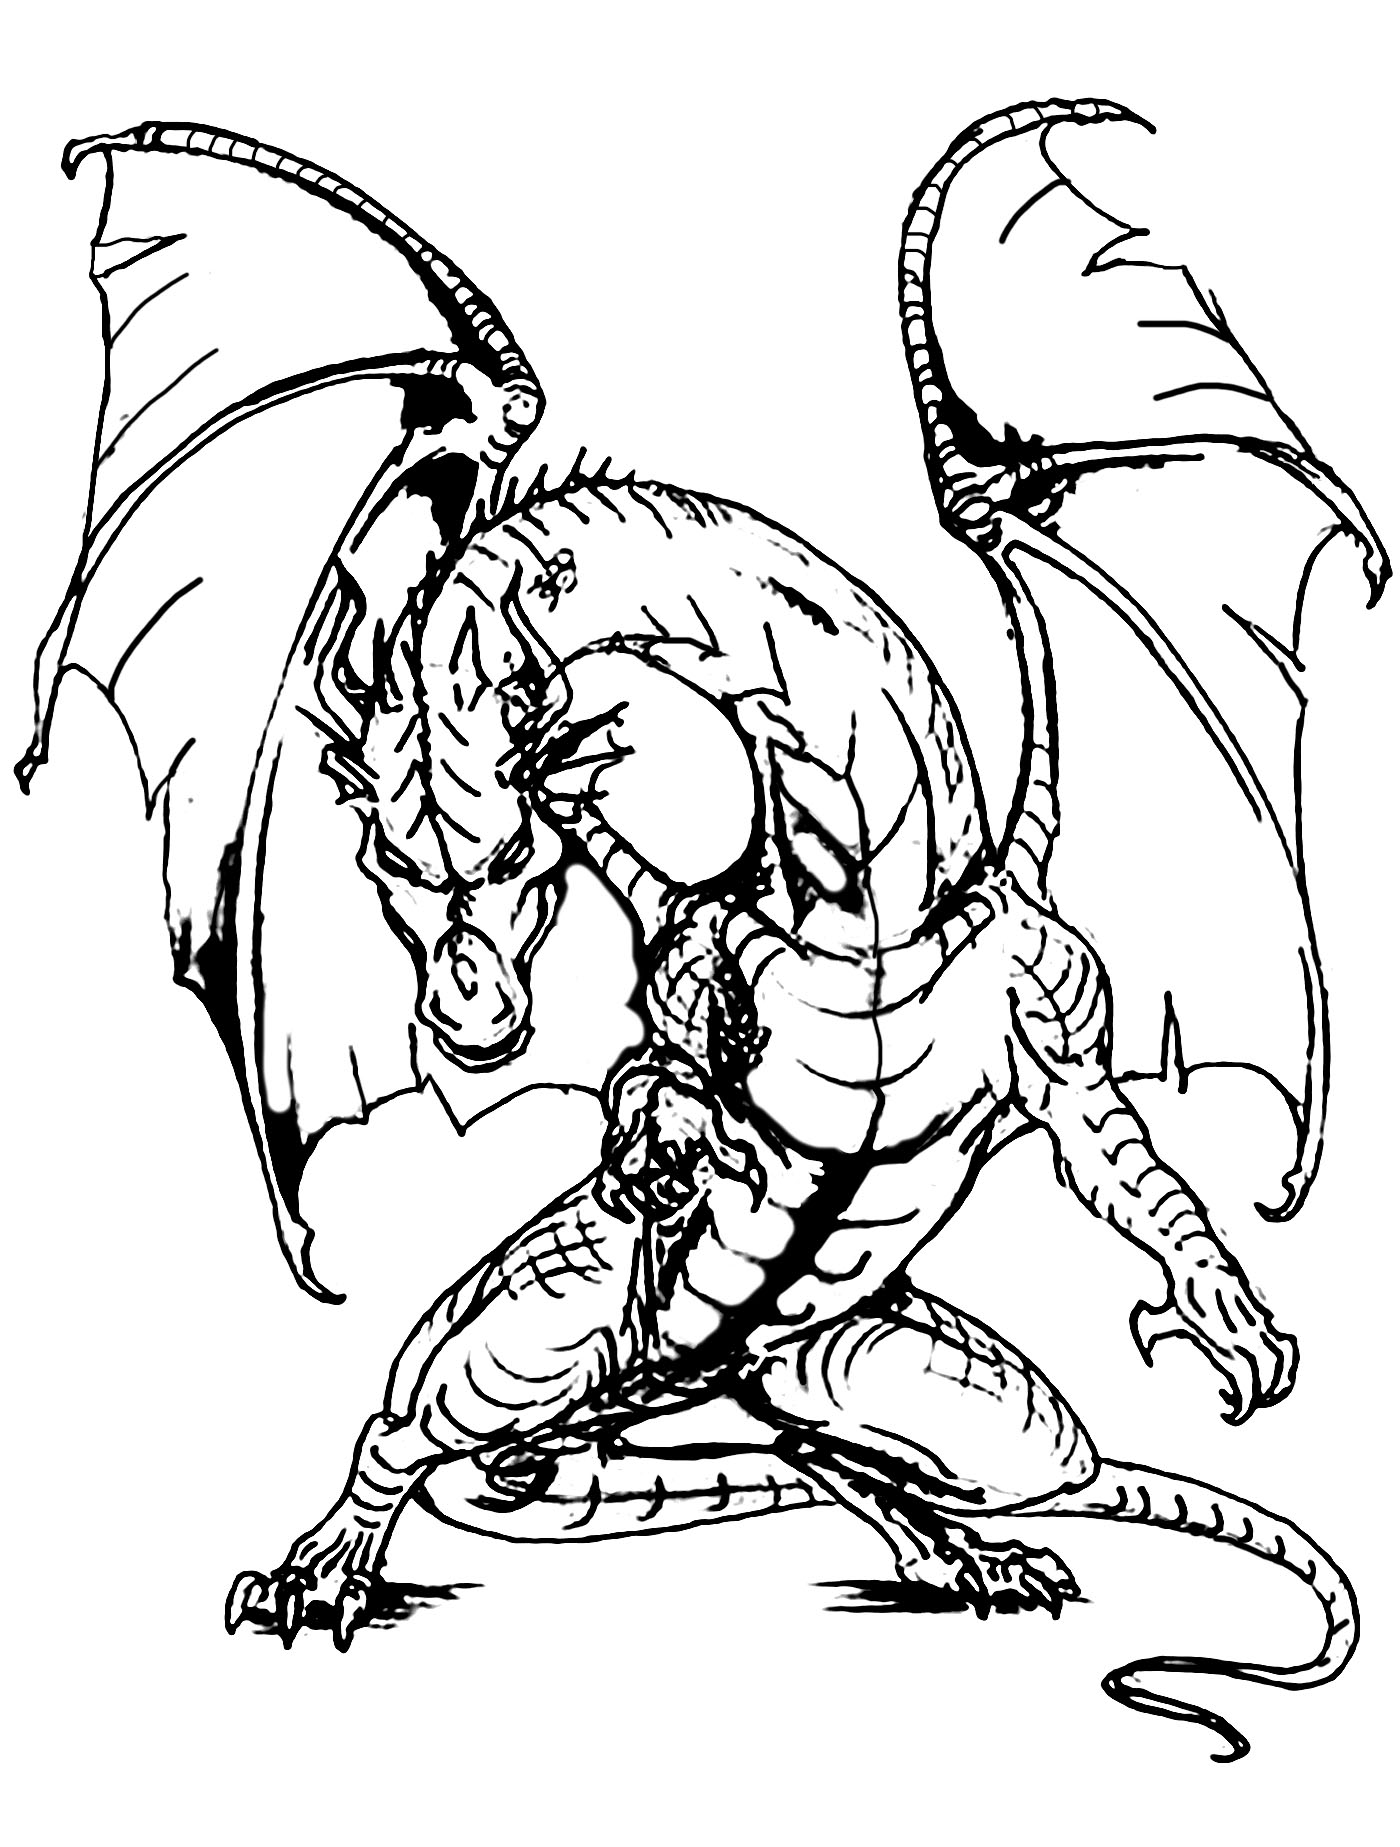 printable dragon dragon coloring pages for adults best coloring pages for dragon printable 1 1